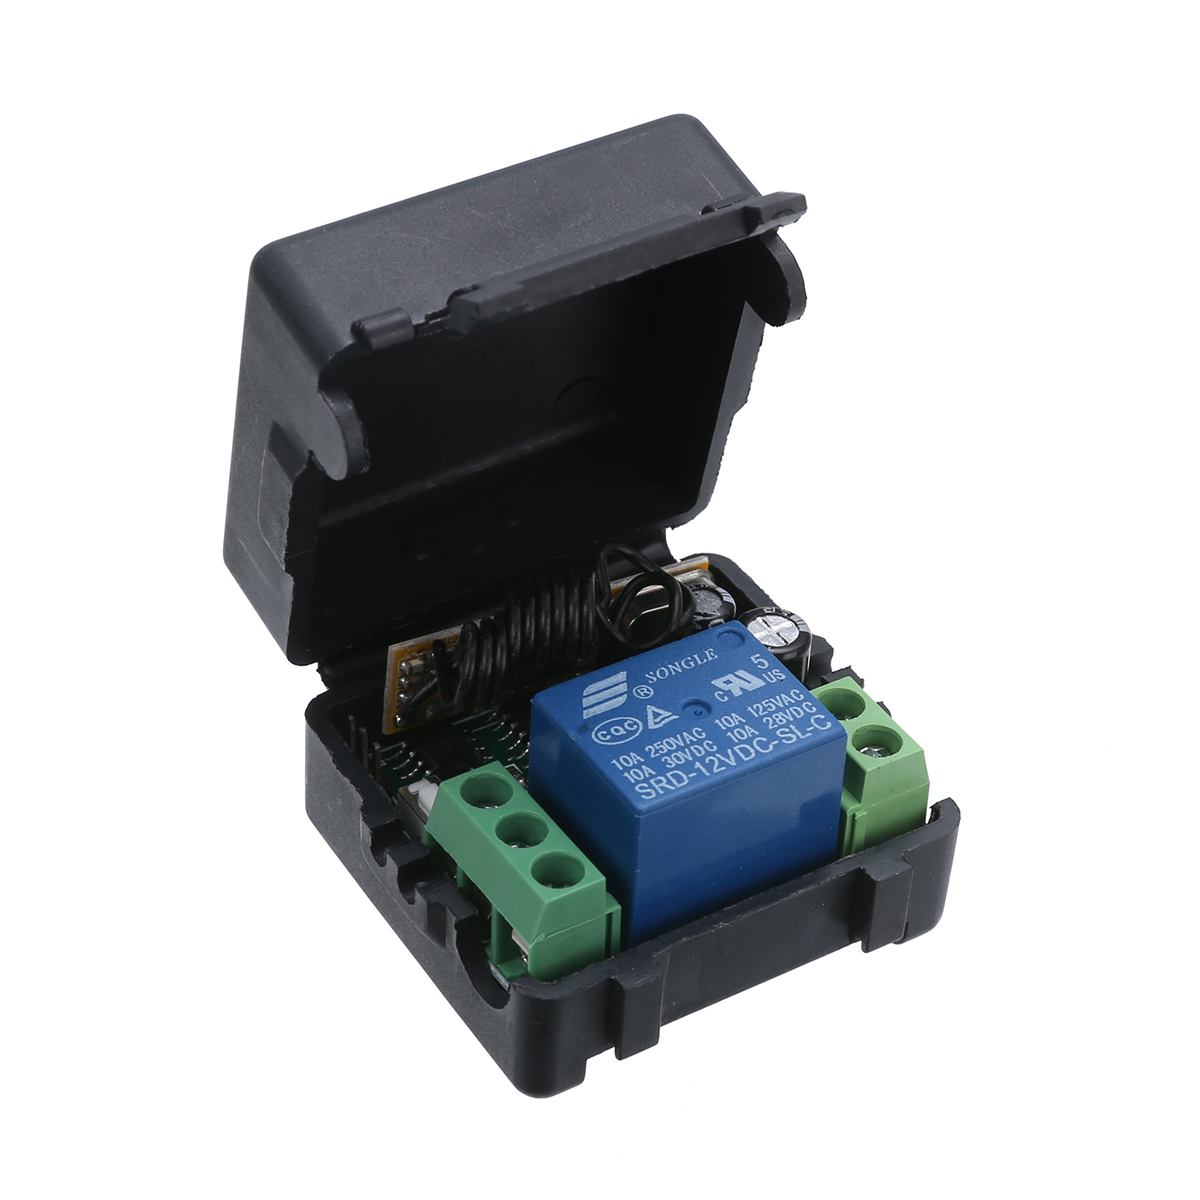 Mayitr 1pc DC 12V 2CH Wireless Remote Control 315MHZ Professional Radio Relay Switch Transceiver Receiver Kits